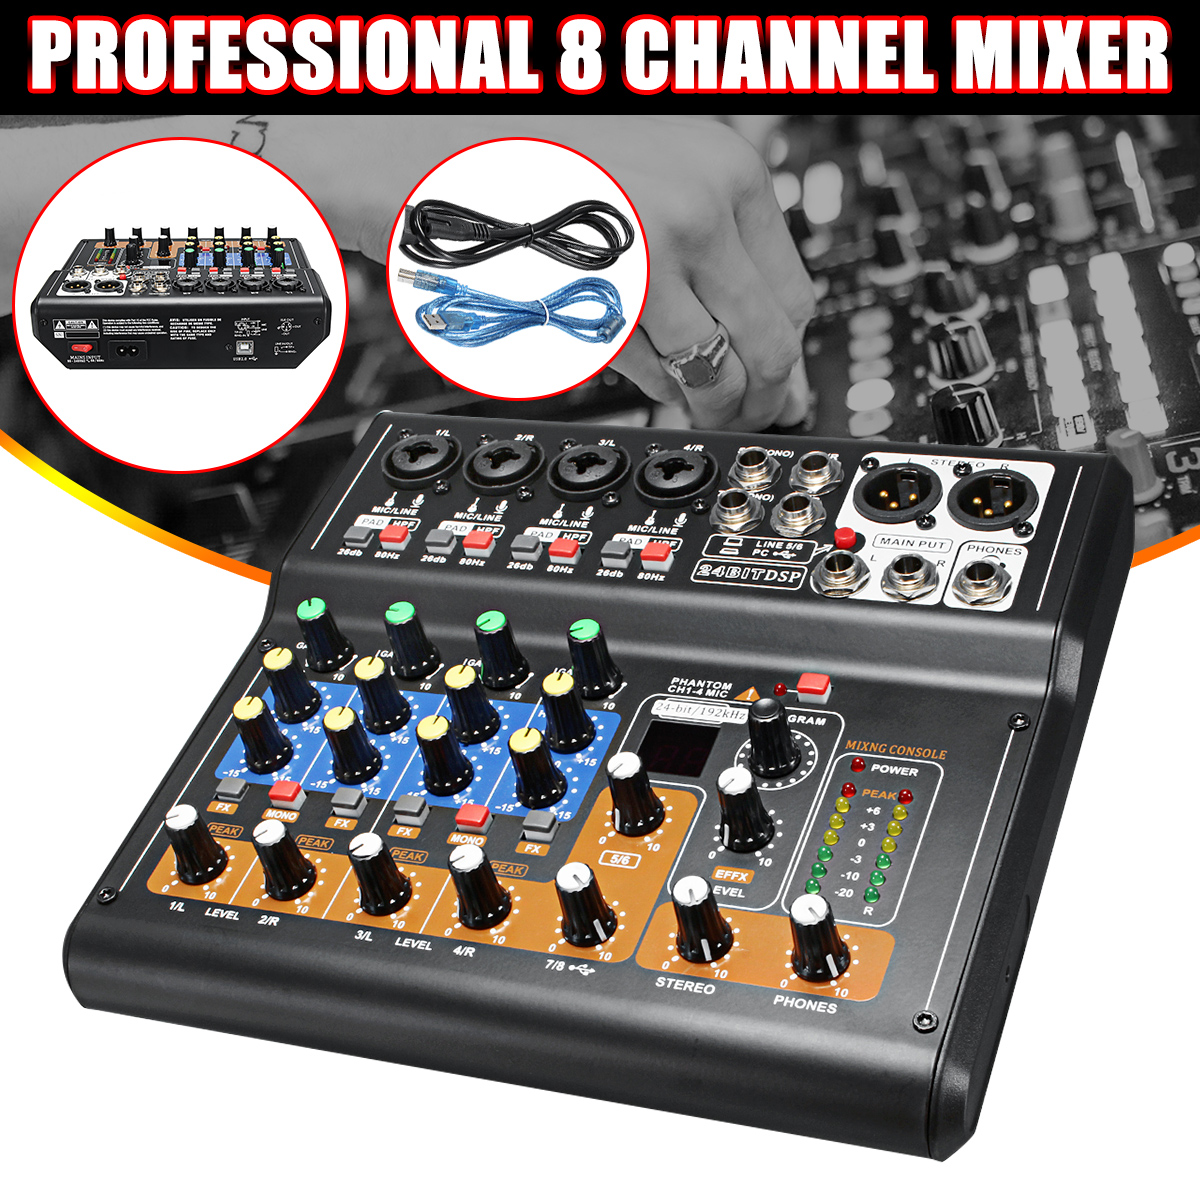 Kinco Mini Portable Mixer 8 Channel Professional Live Studio Audio KTV Karaoke Mixer USB Mixing Console 48V for Family KTV professional 4 channel live mixing studio audio sound console network anchor portable mixing device vocal effect processor